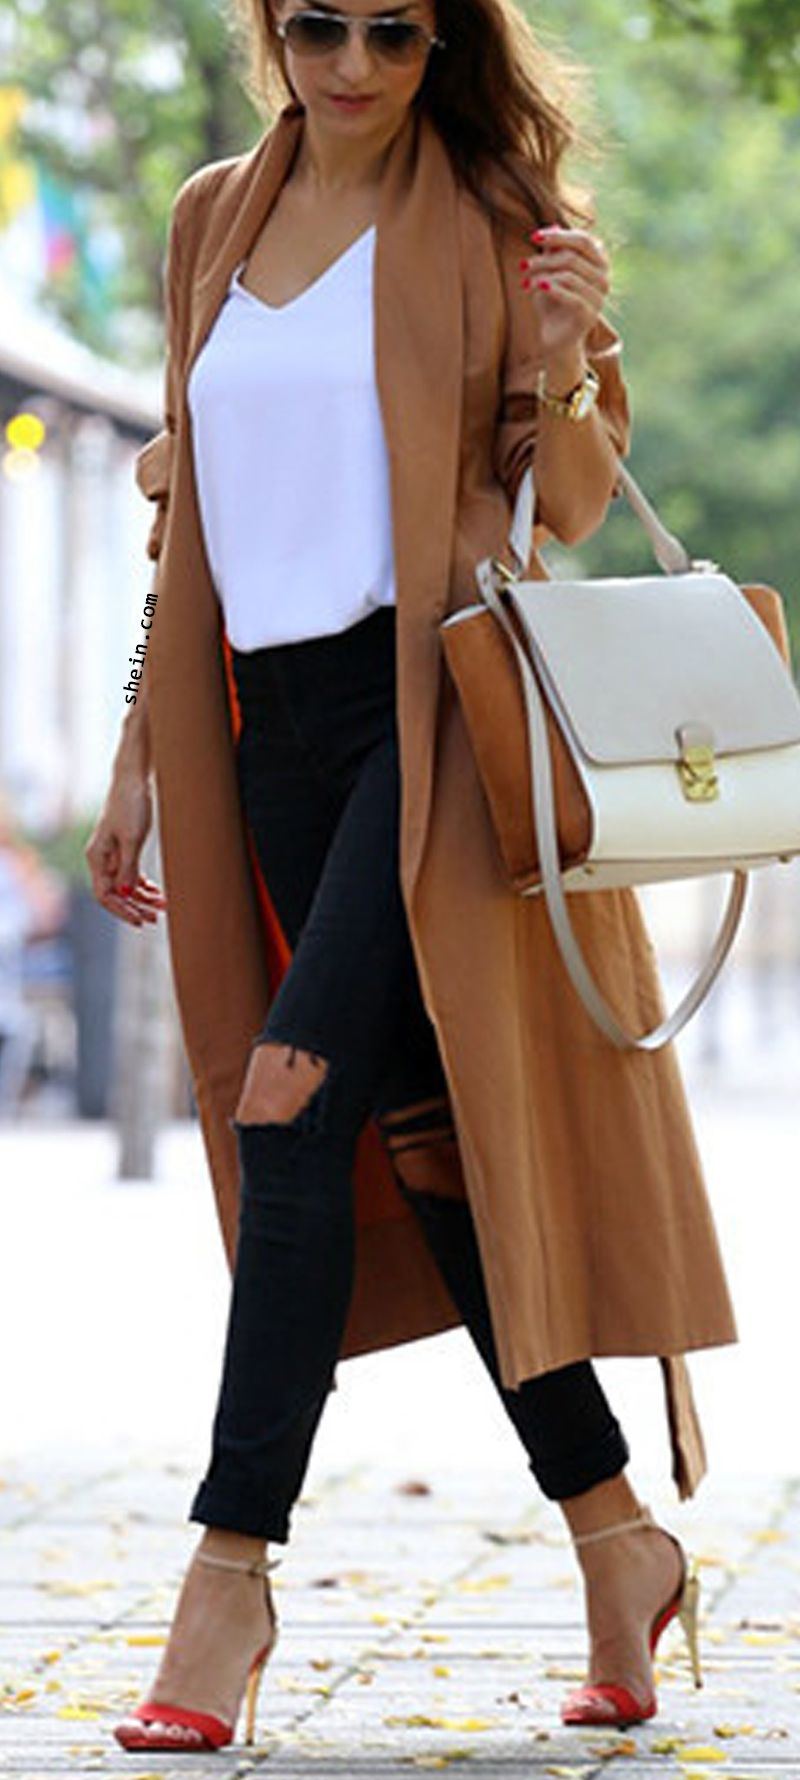 Stylish Fall Fashion Brown Trench Coat Outfit Outfit Mode Outfit Herbst